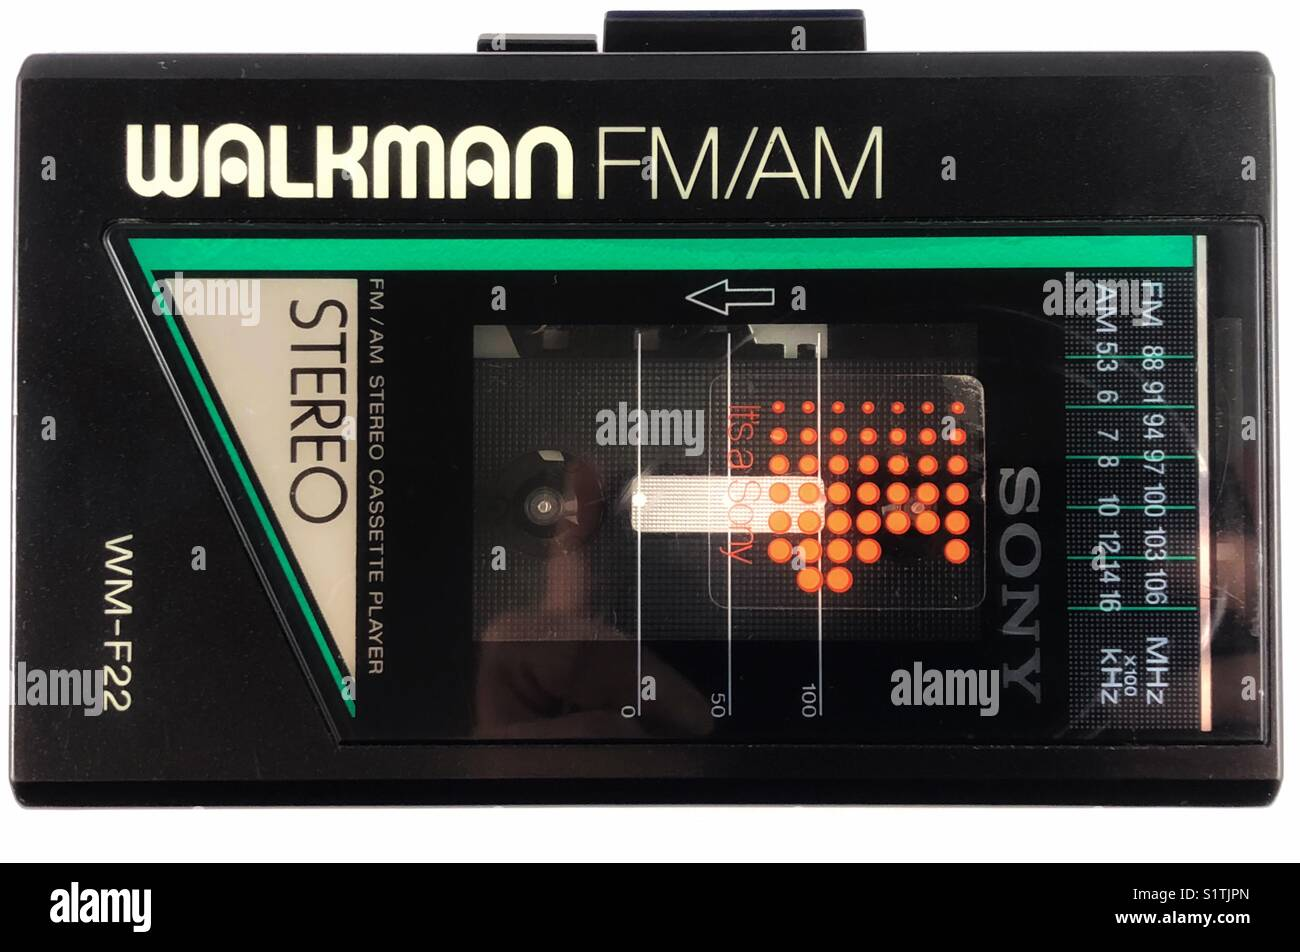 Classic Sony 1980s cassette radio Walkman personal stereo system. - Stock Image